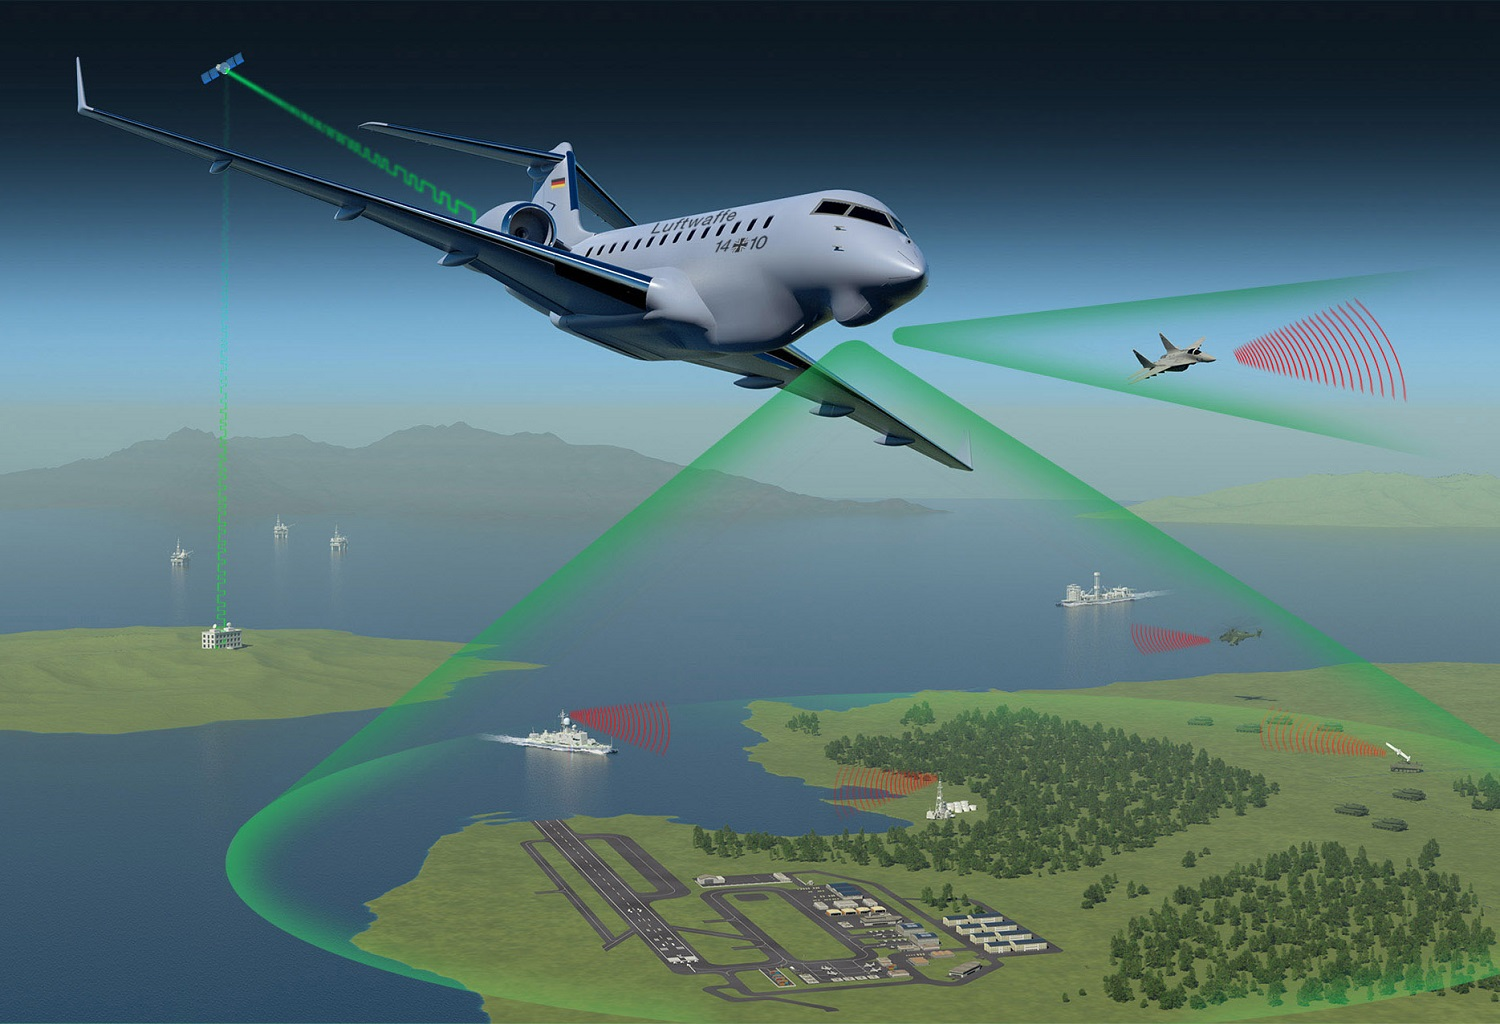 HENSOLDT Awarded Contract for Pegasus Airborne Electronic Signals Intelligence System